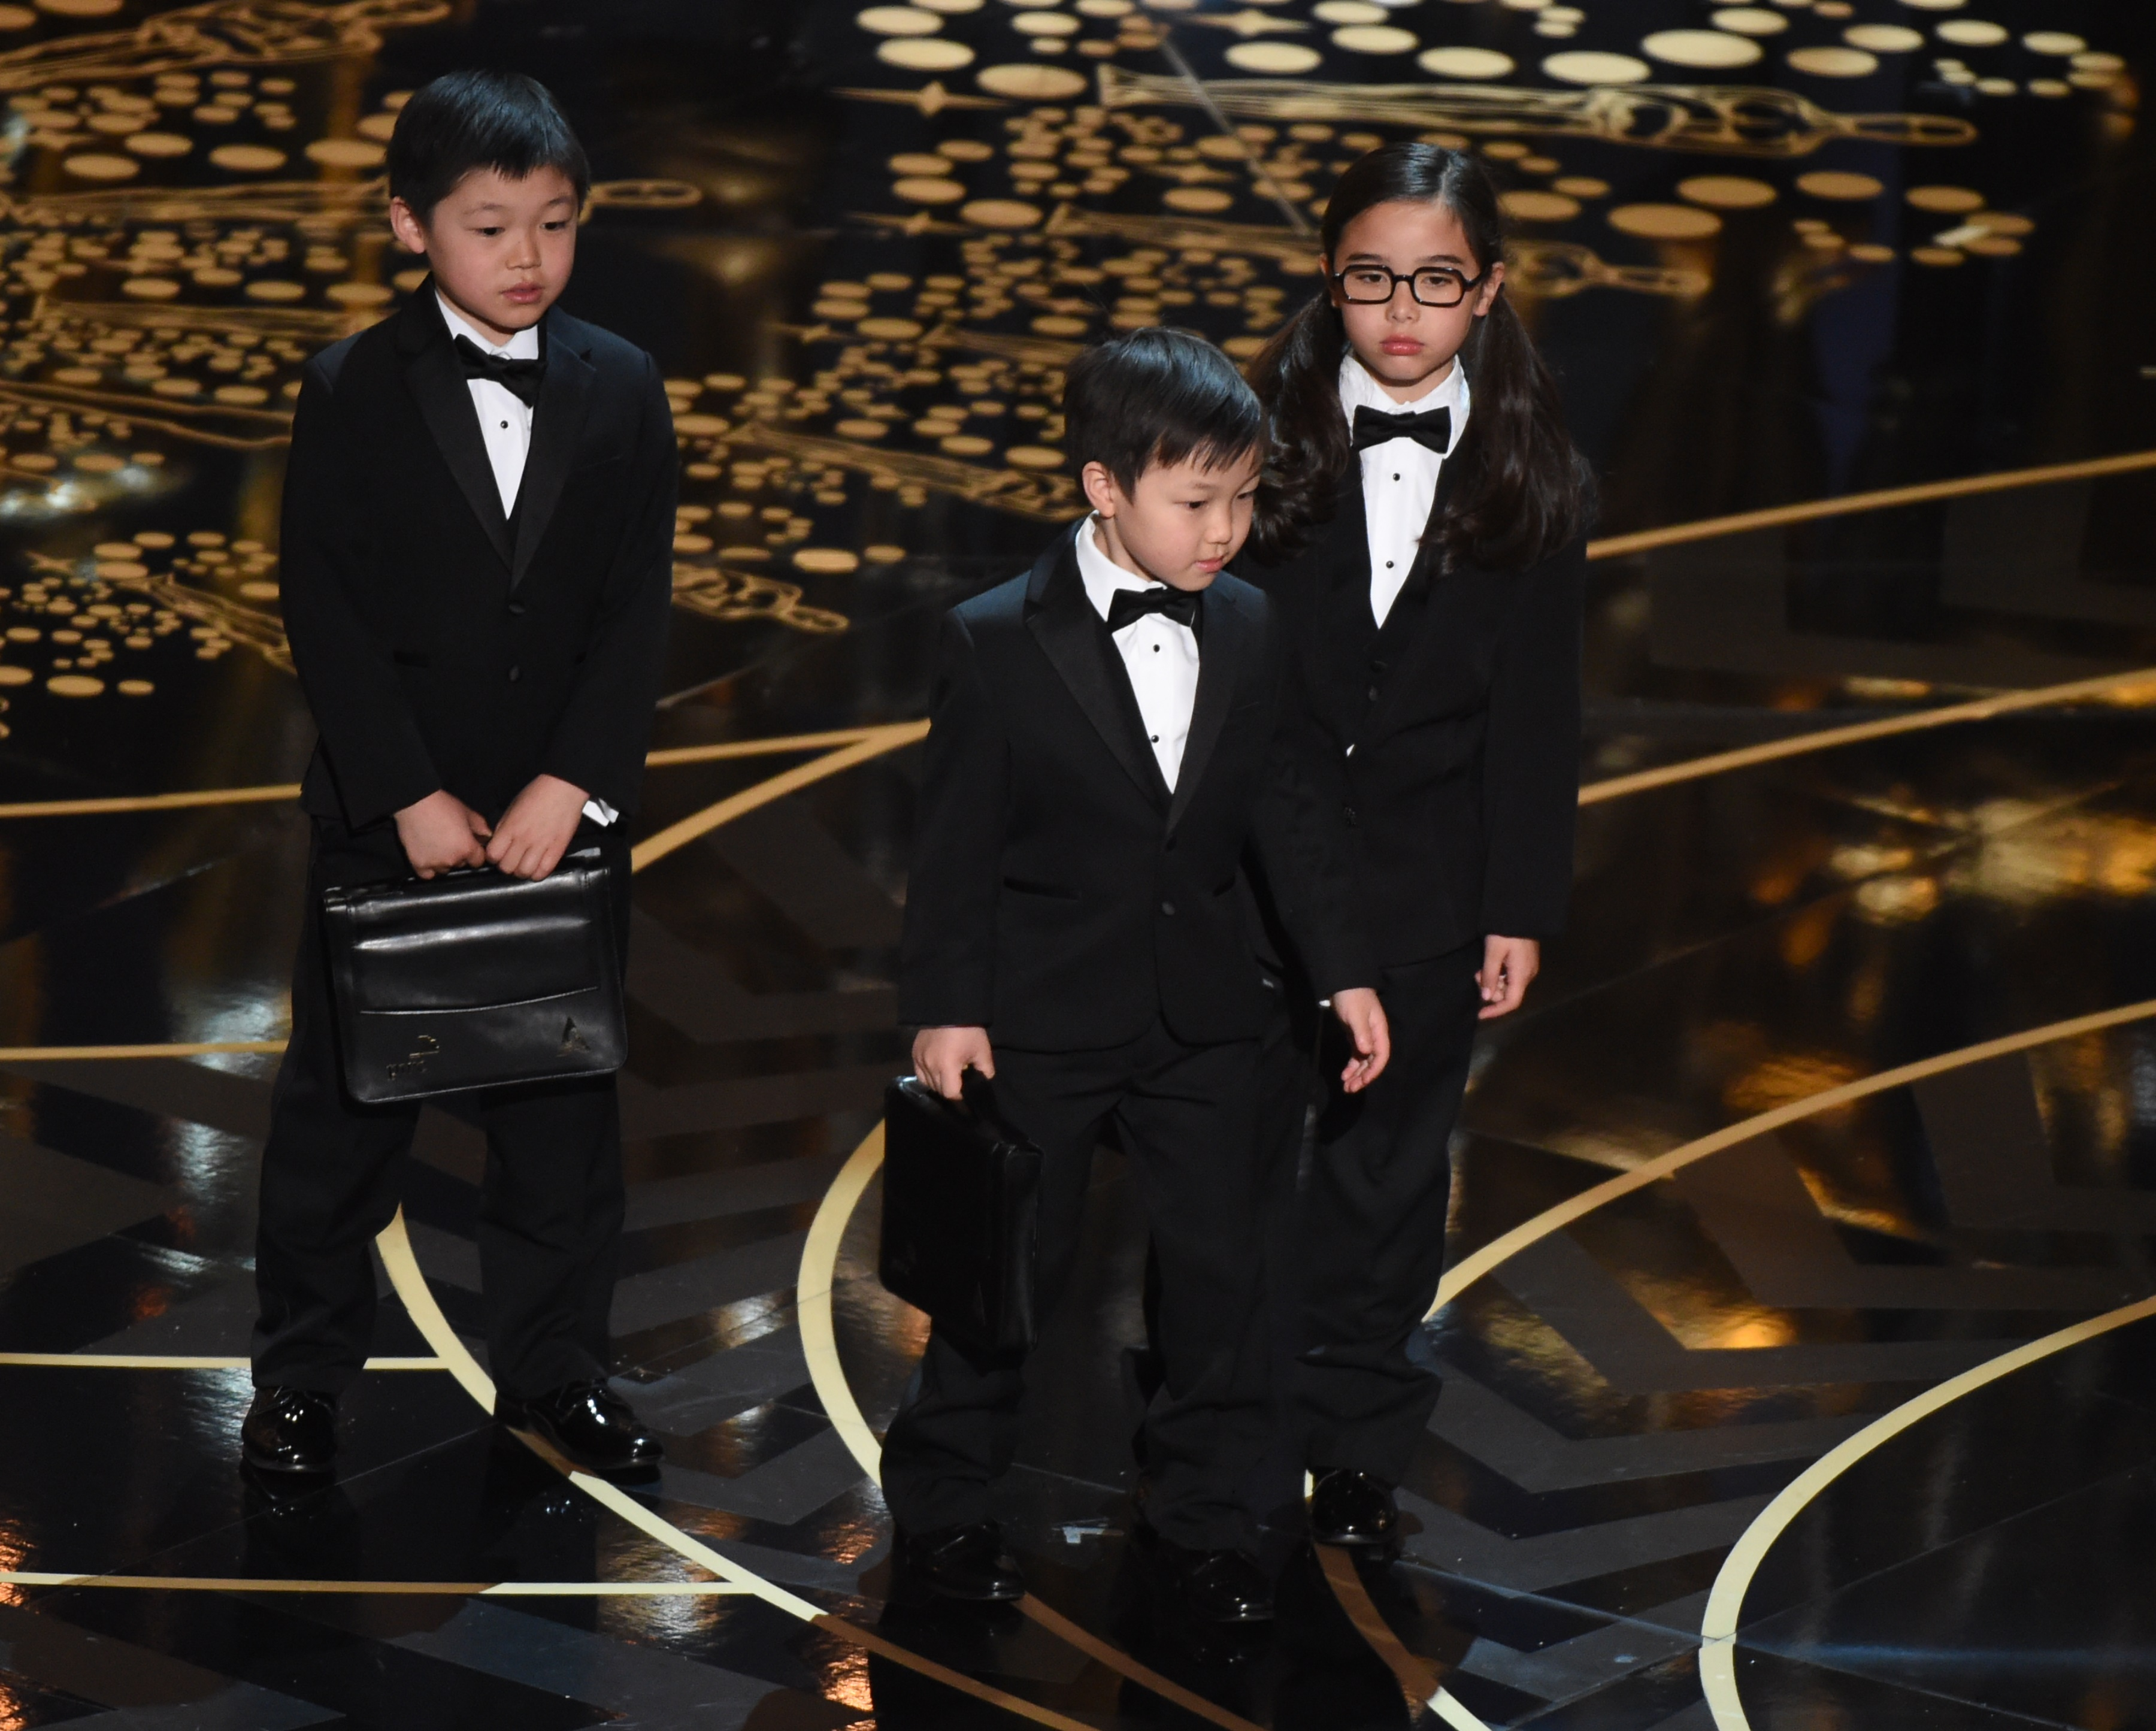 The Asian Jokes Made At The Oscars Exposed A Painful Truth About Minorities  In Hollywood